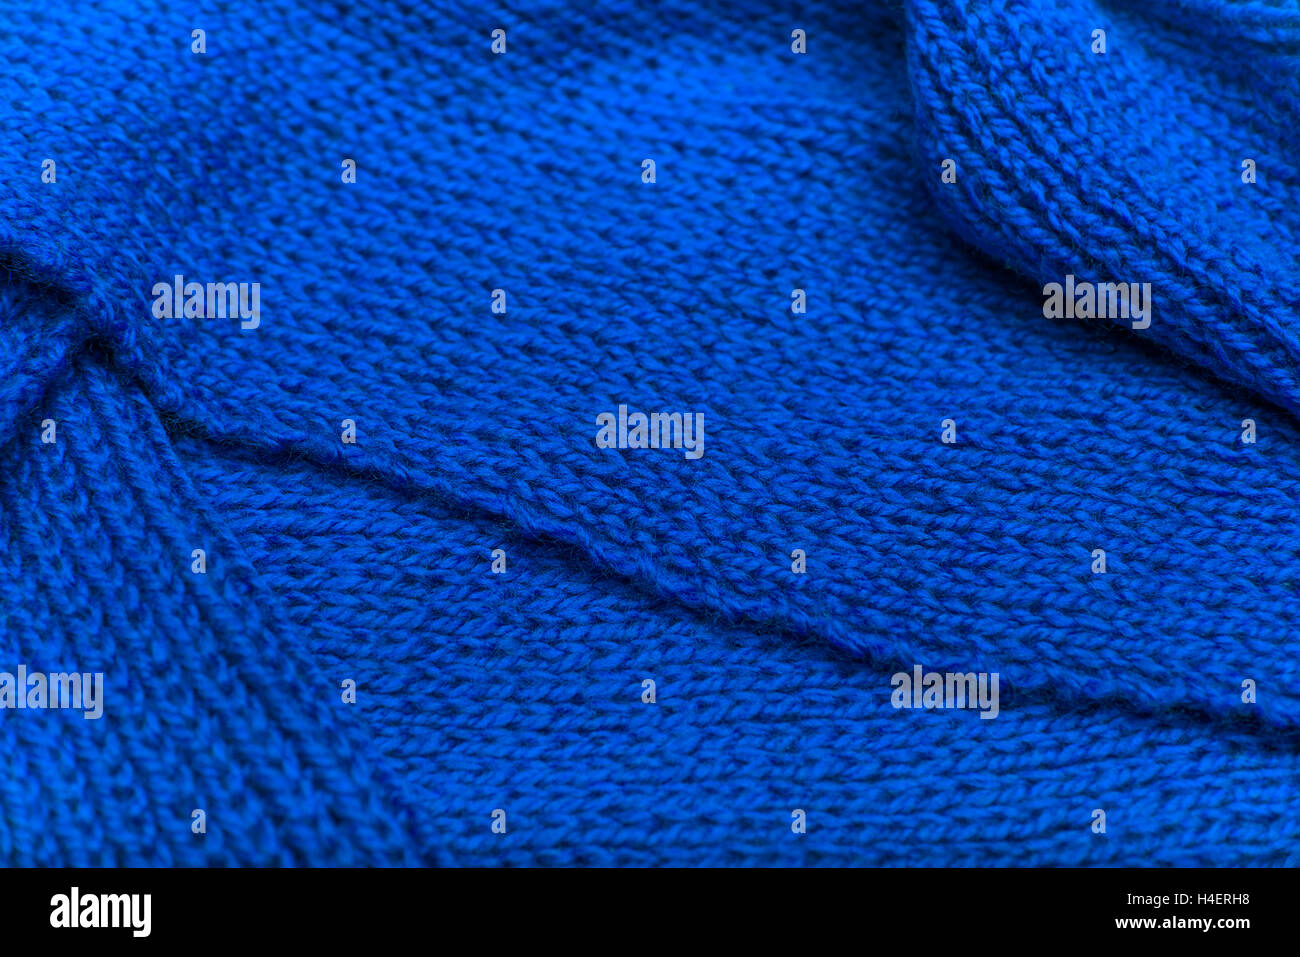 The texture of the knitted fabric. Place for placing of your text. - Stock Image